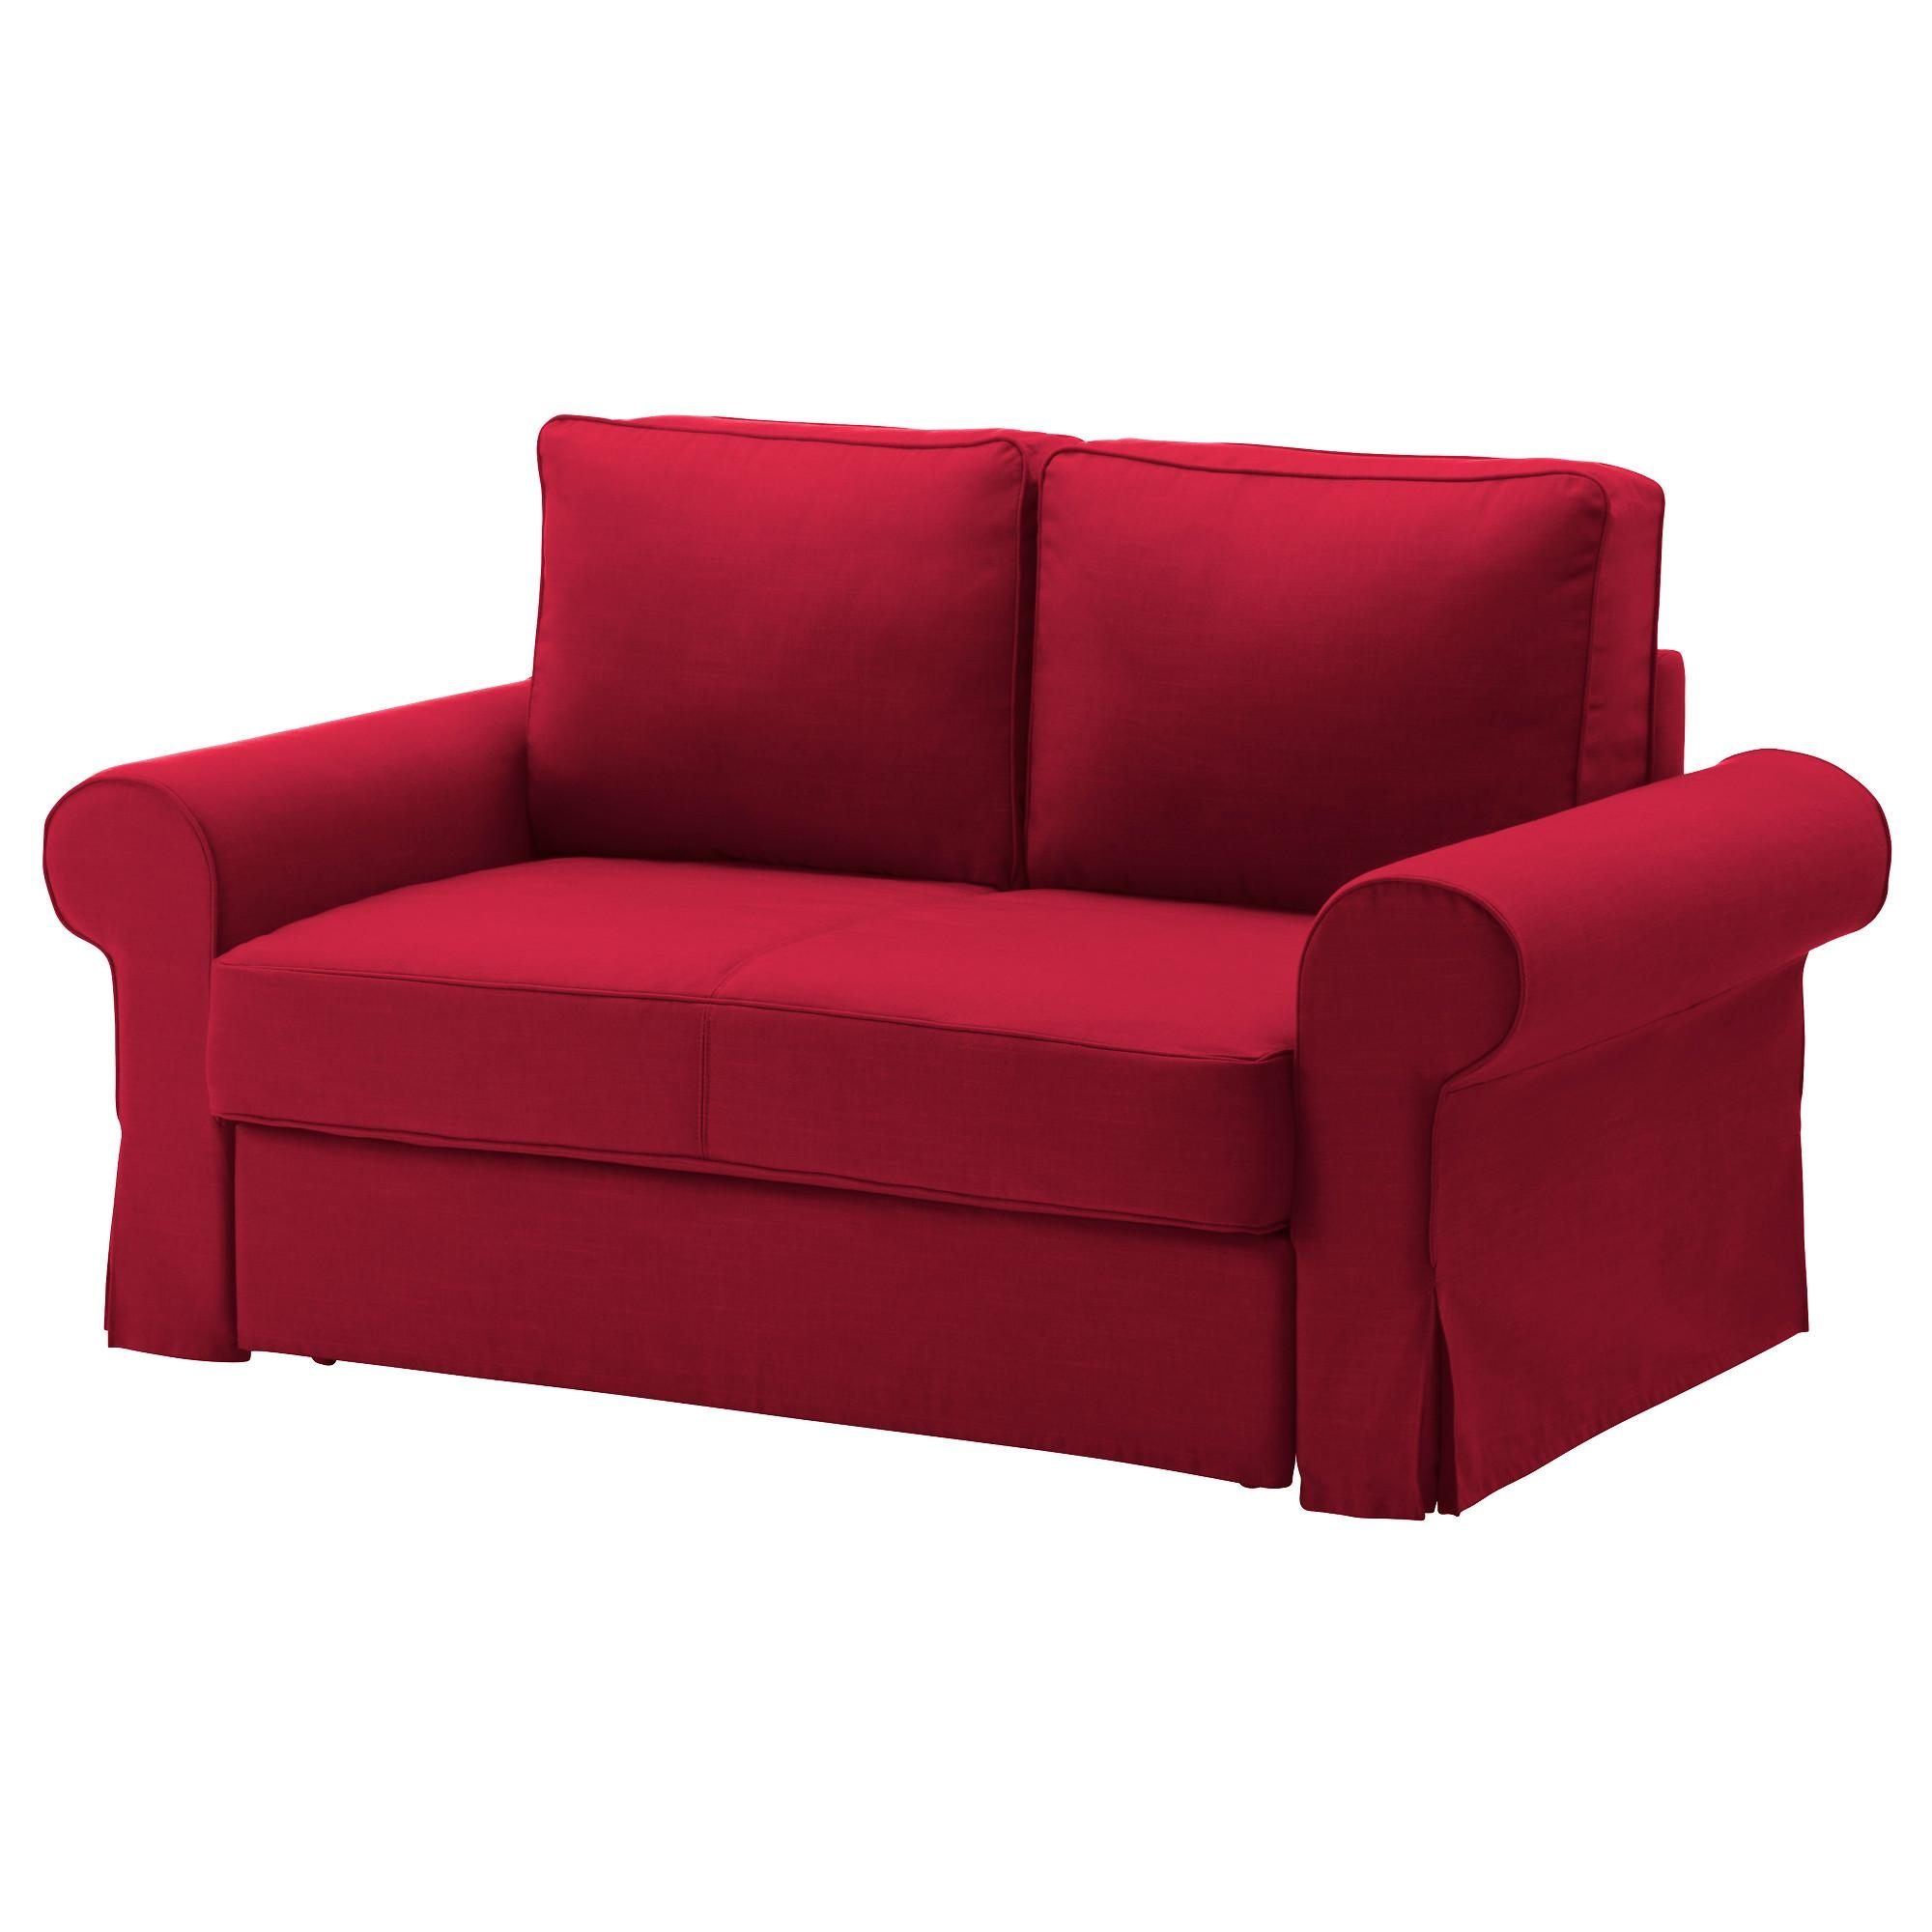 Backabro Two Seat Sofa Bed Nordvalla Red – Ikea Throughout Red Sofa Beds Ikea (View 3 of 20)